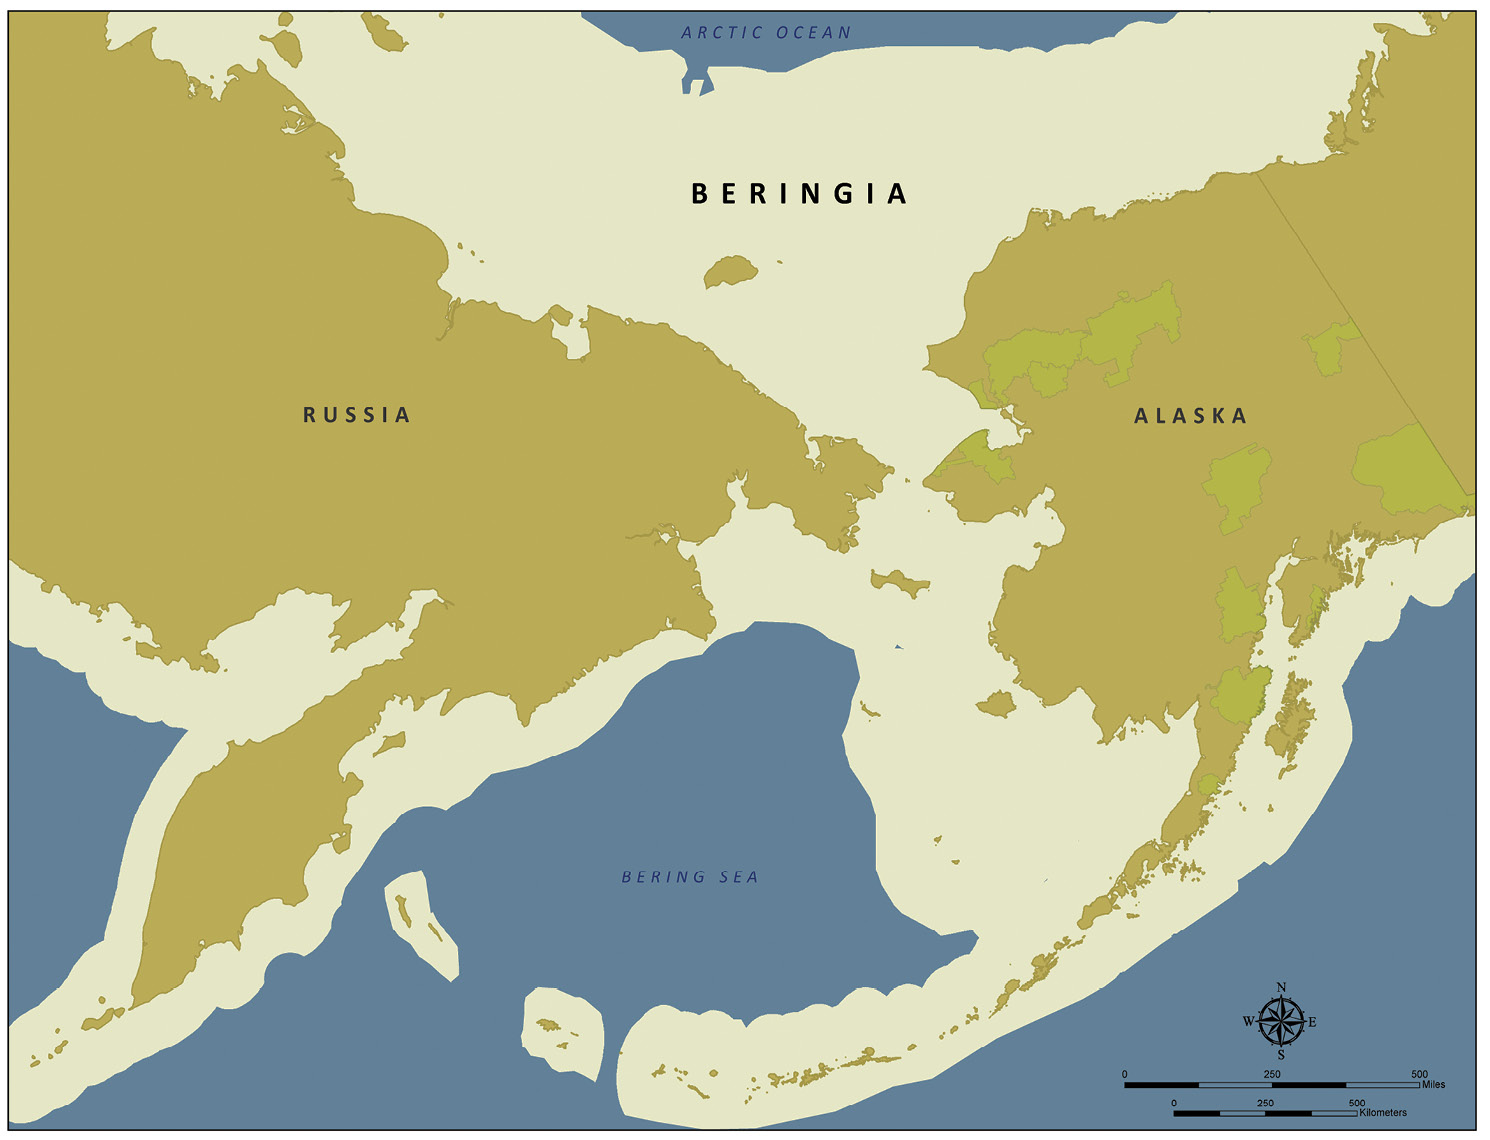 LEFT The extent of Beringia about 12,000 years ago, with modern coastlines superimposed, showing the land bridge that